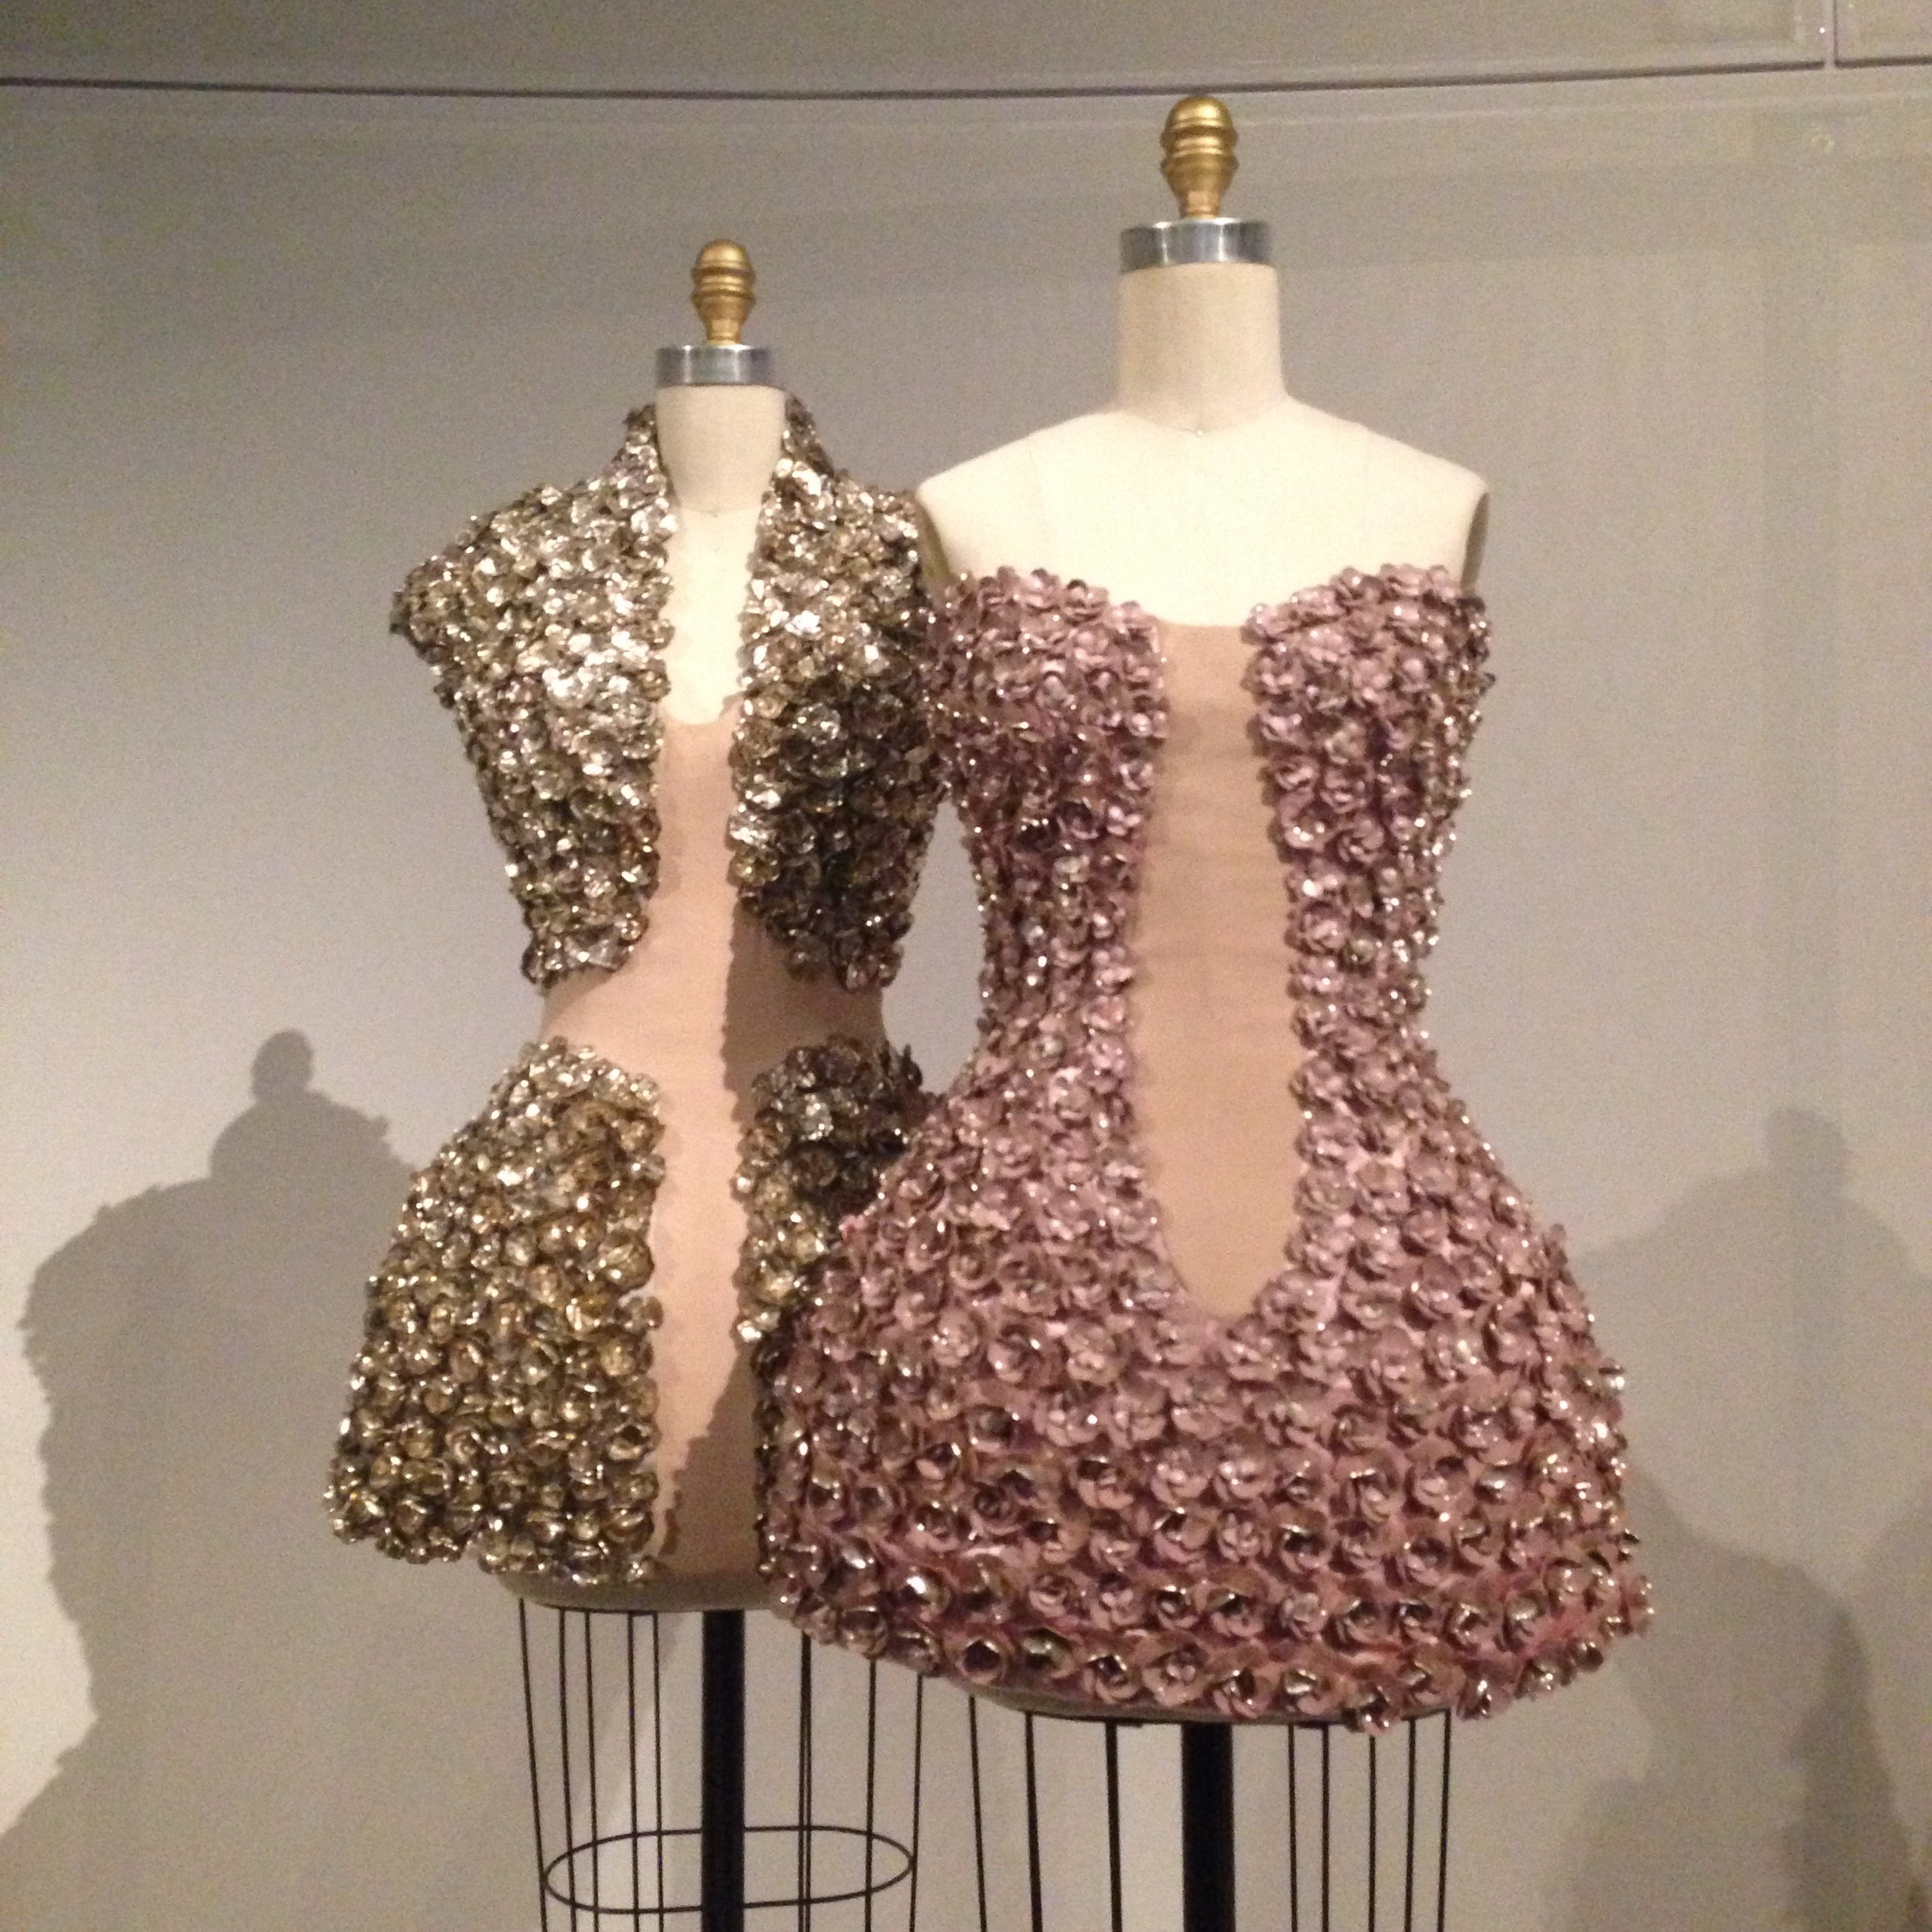 Alexander McQueen dresses with metal flowers and synthetic pearls.